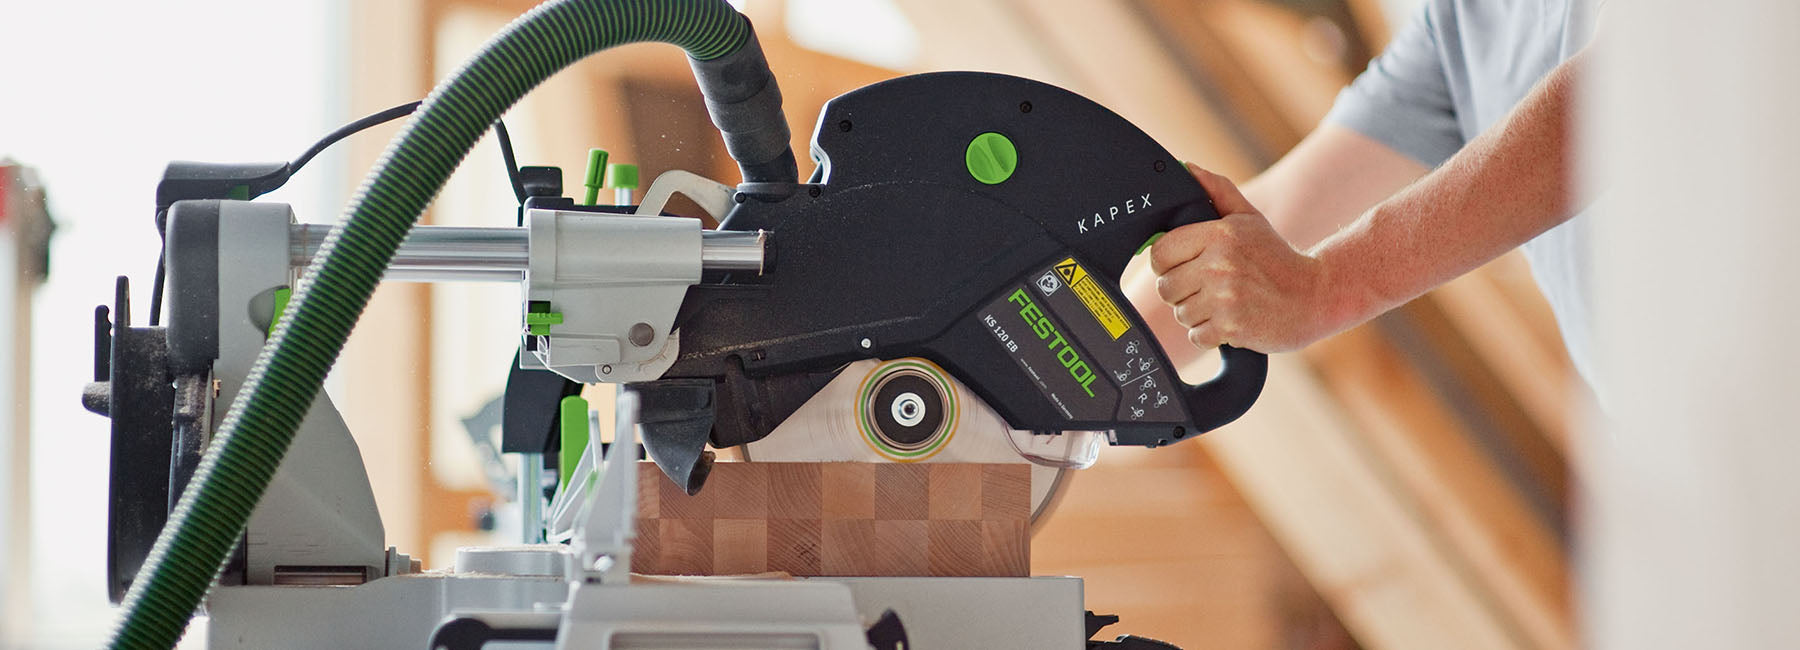 Top 3 Reasons to Choose Festool